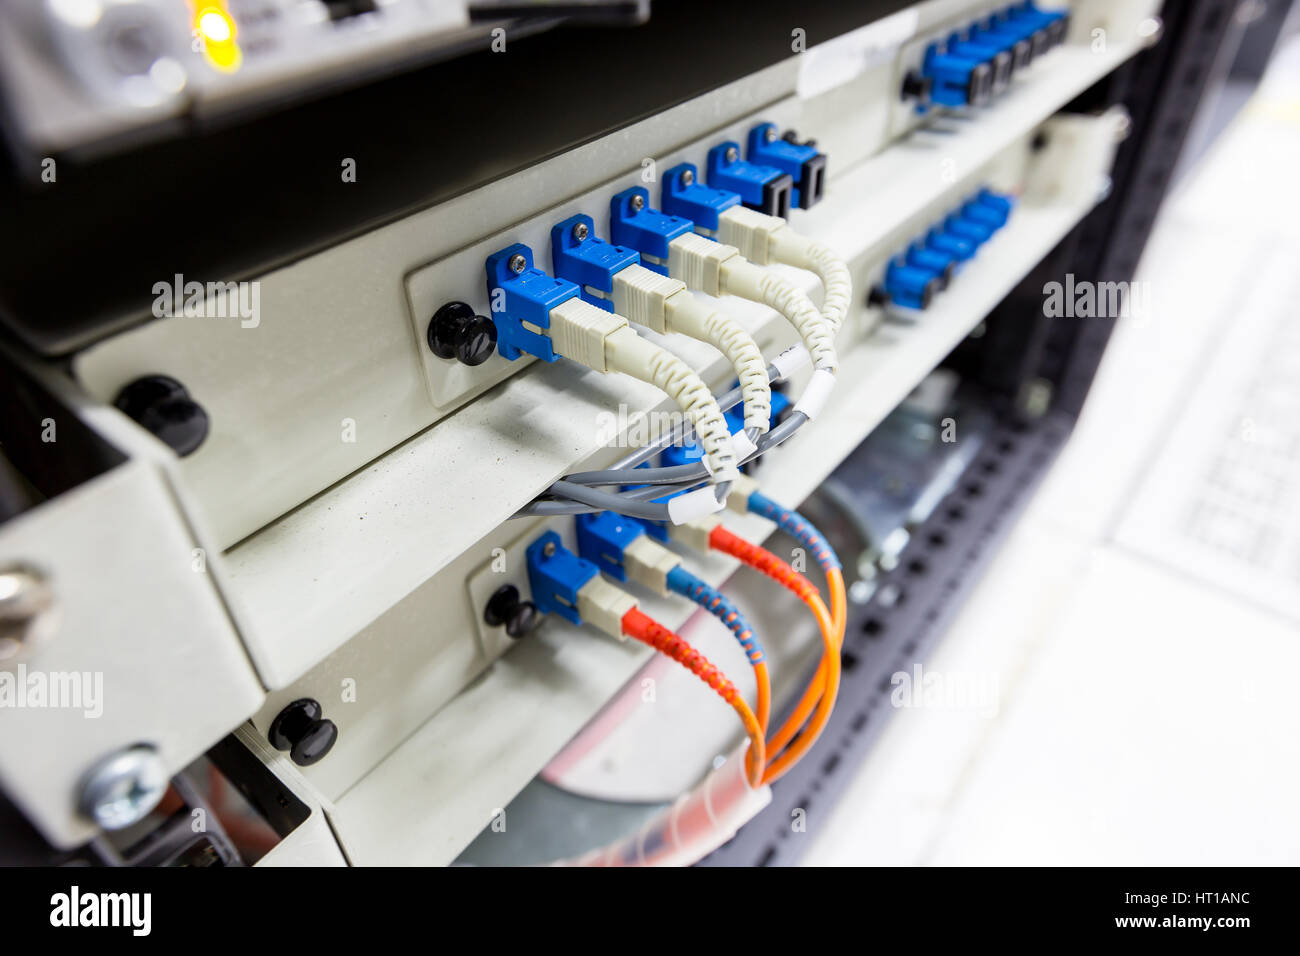 Fiber Optic Cable Connect To Ethernet Switch Mount On Rack